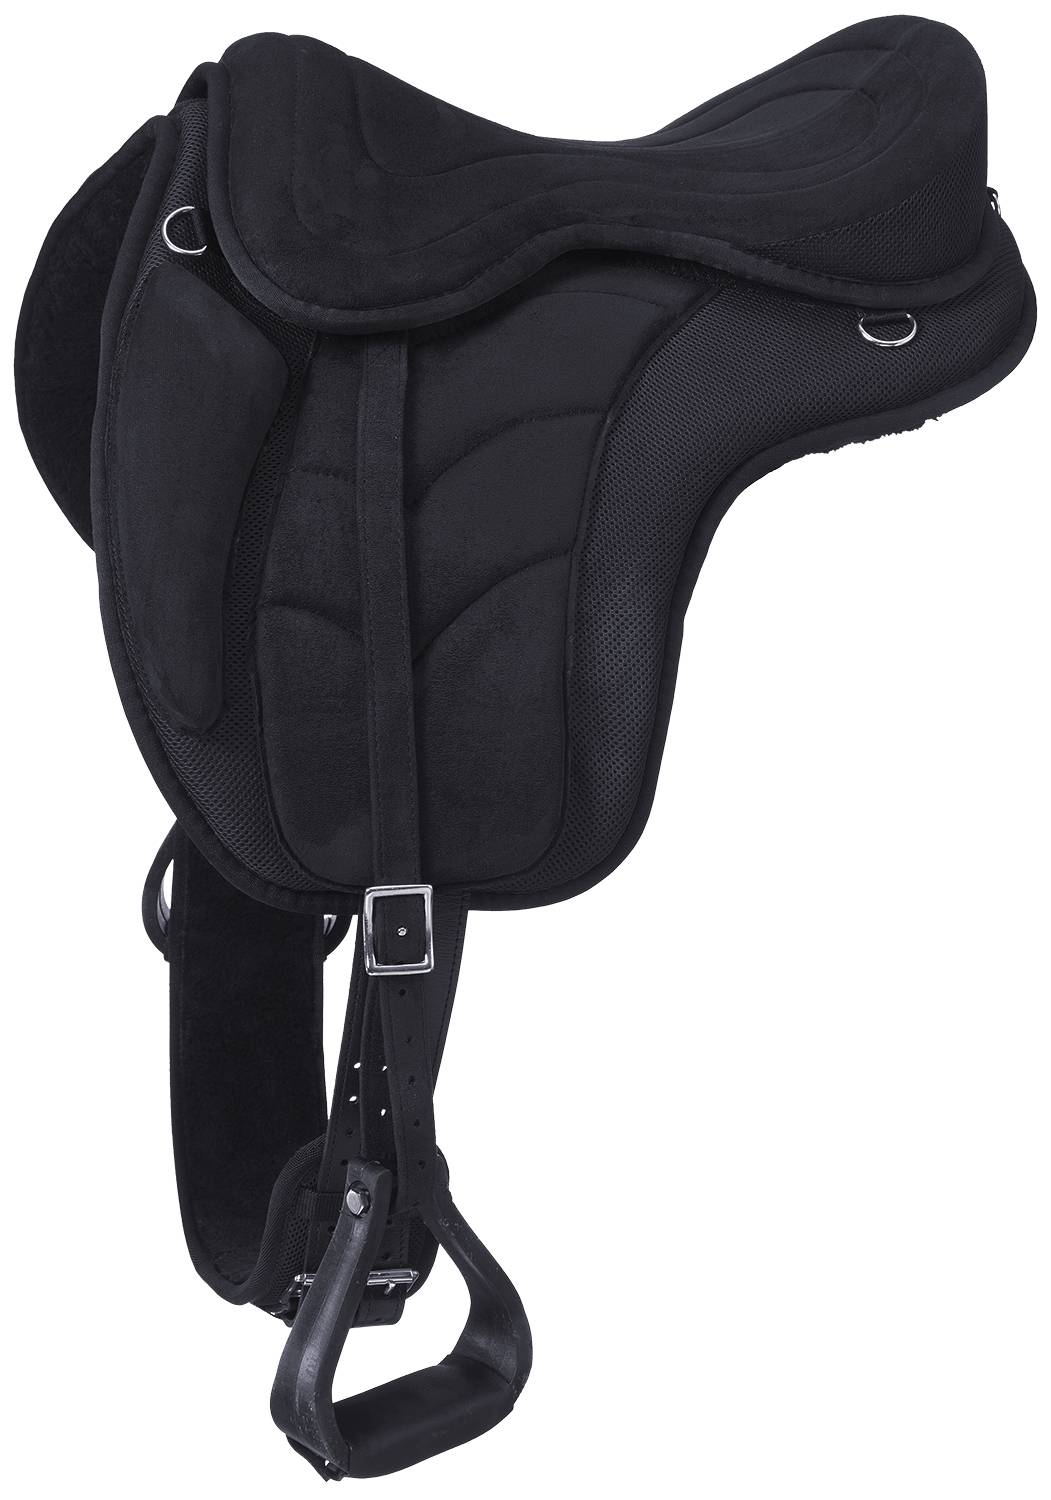 Treeless Endurance Saddle